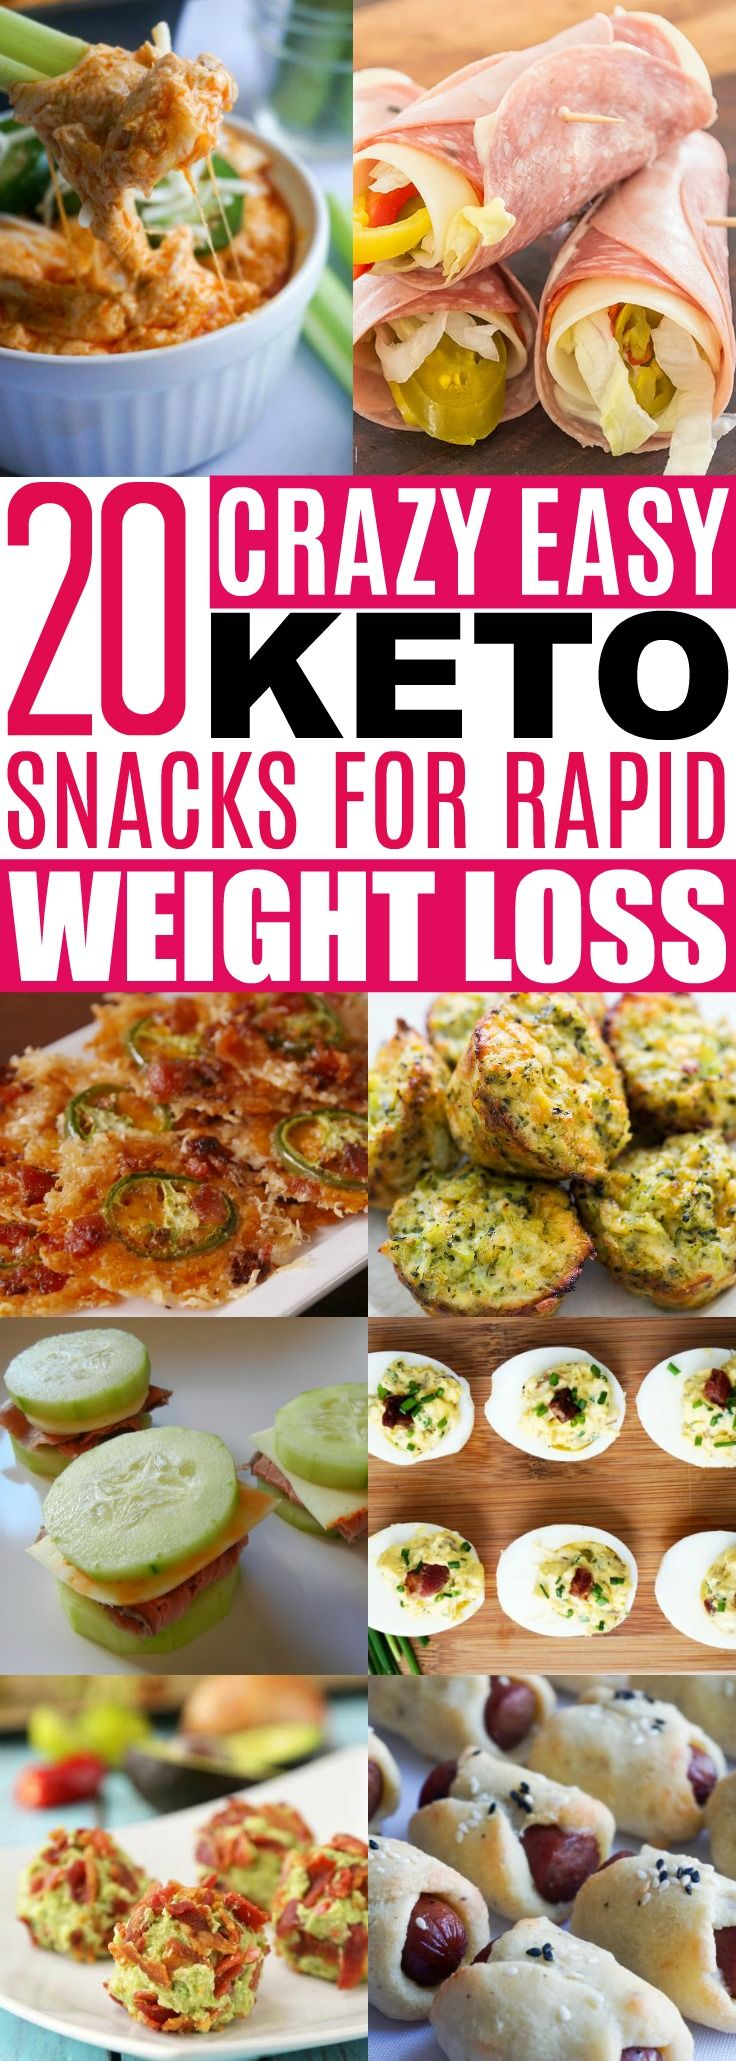 20 Easy Keto Breakfast Recipes That'll Help You Lose Weight | Keto snacks, Keto and Snacks